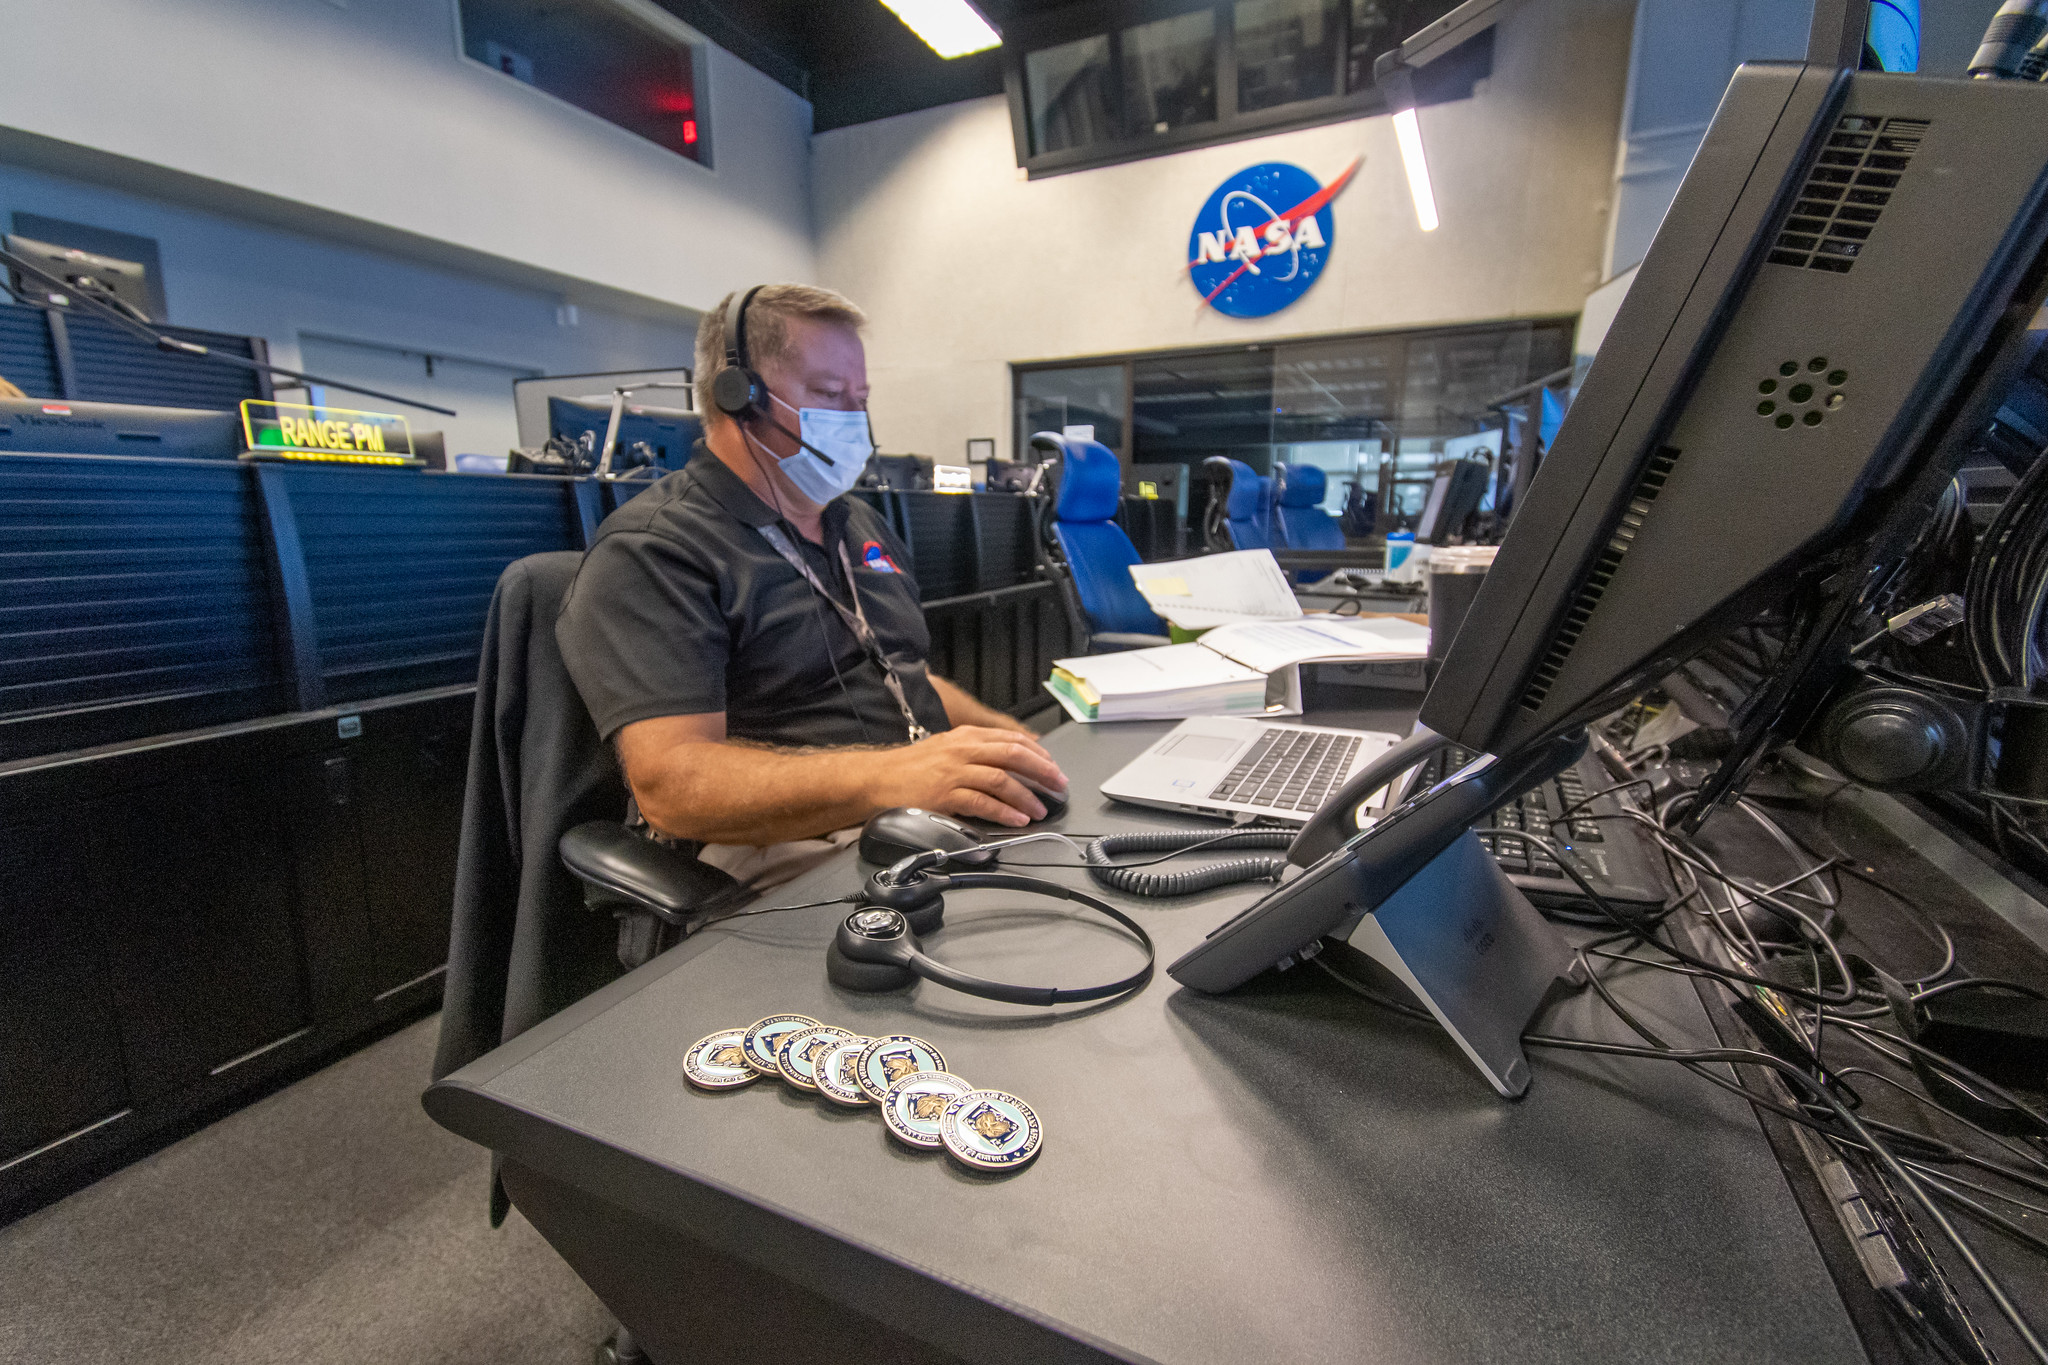 Greg Cusimano works at computer inside NASA's Range Control Center to help resupply the International Space Station